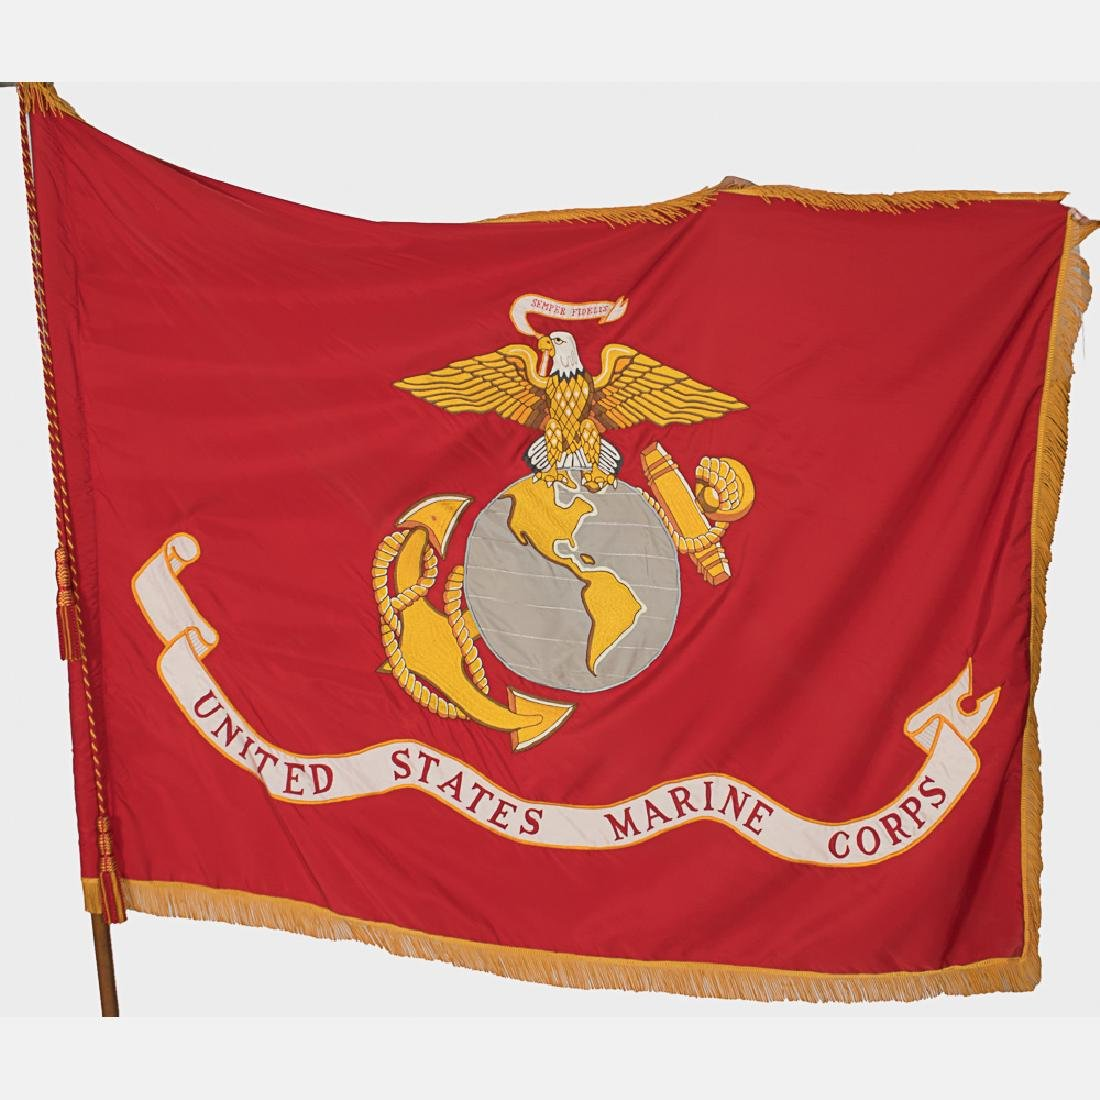 An Embroidered United States Marine Corps Indoor Flag - 4